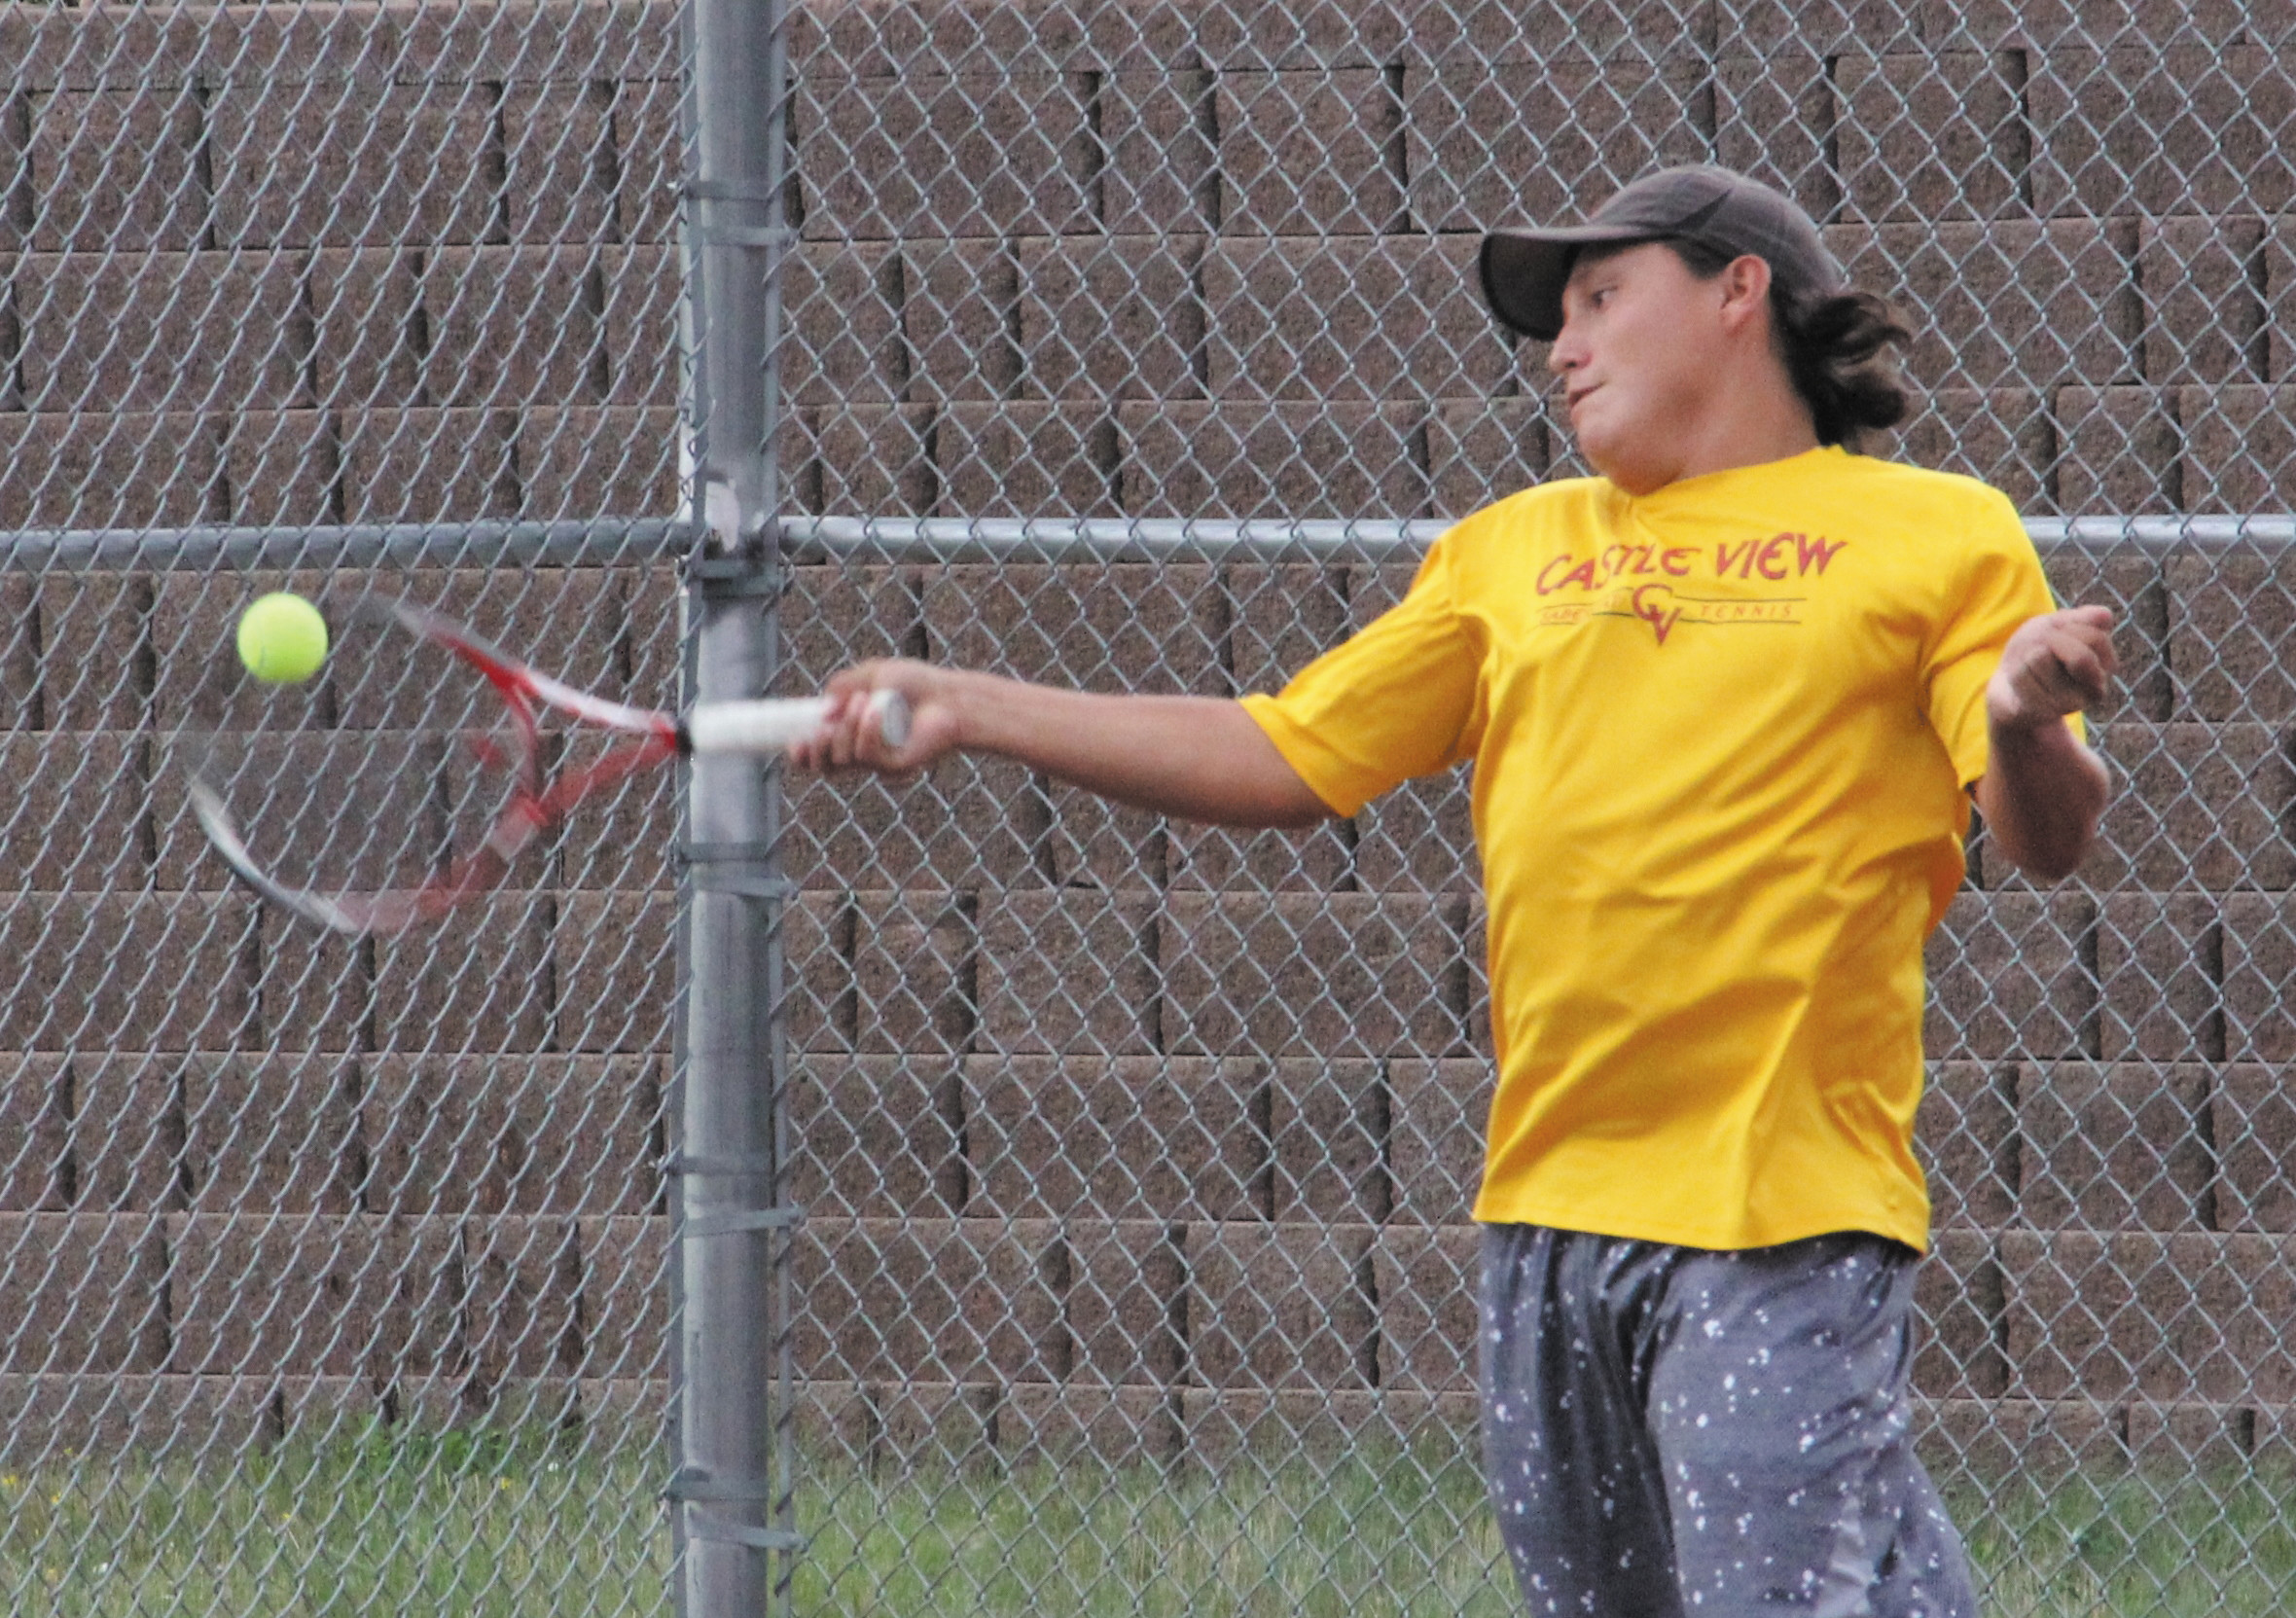 Castle View senior Cody Carlton works on his forehand Aug. 15 at practice. Carlton, who played at No. 1 singles for the Sabercats a year ago, is expected to hold down that position again this fall.